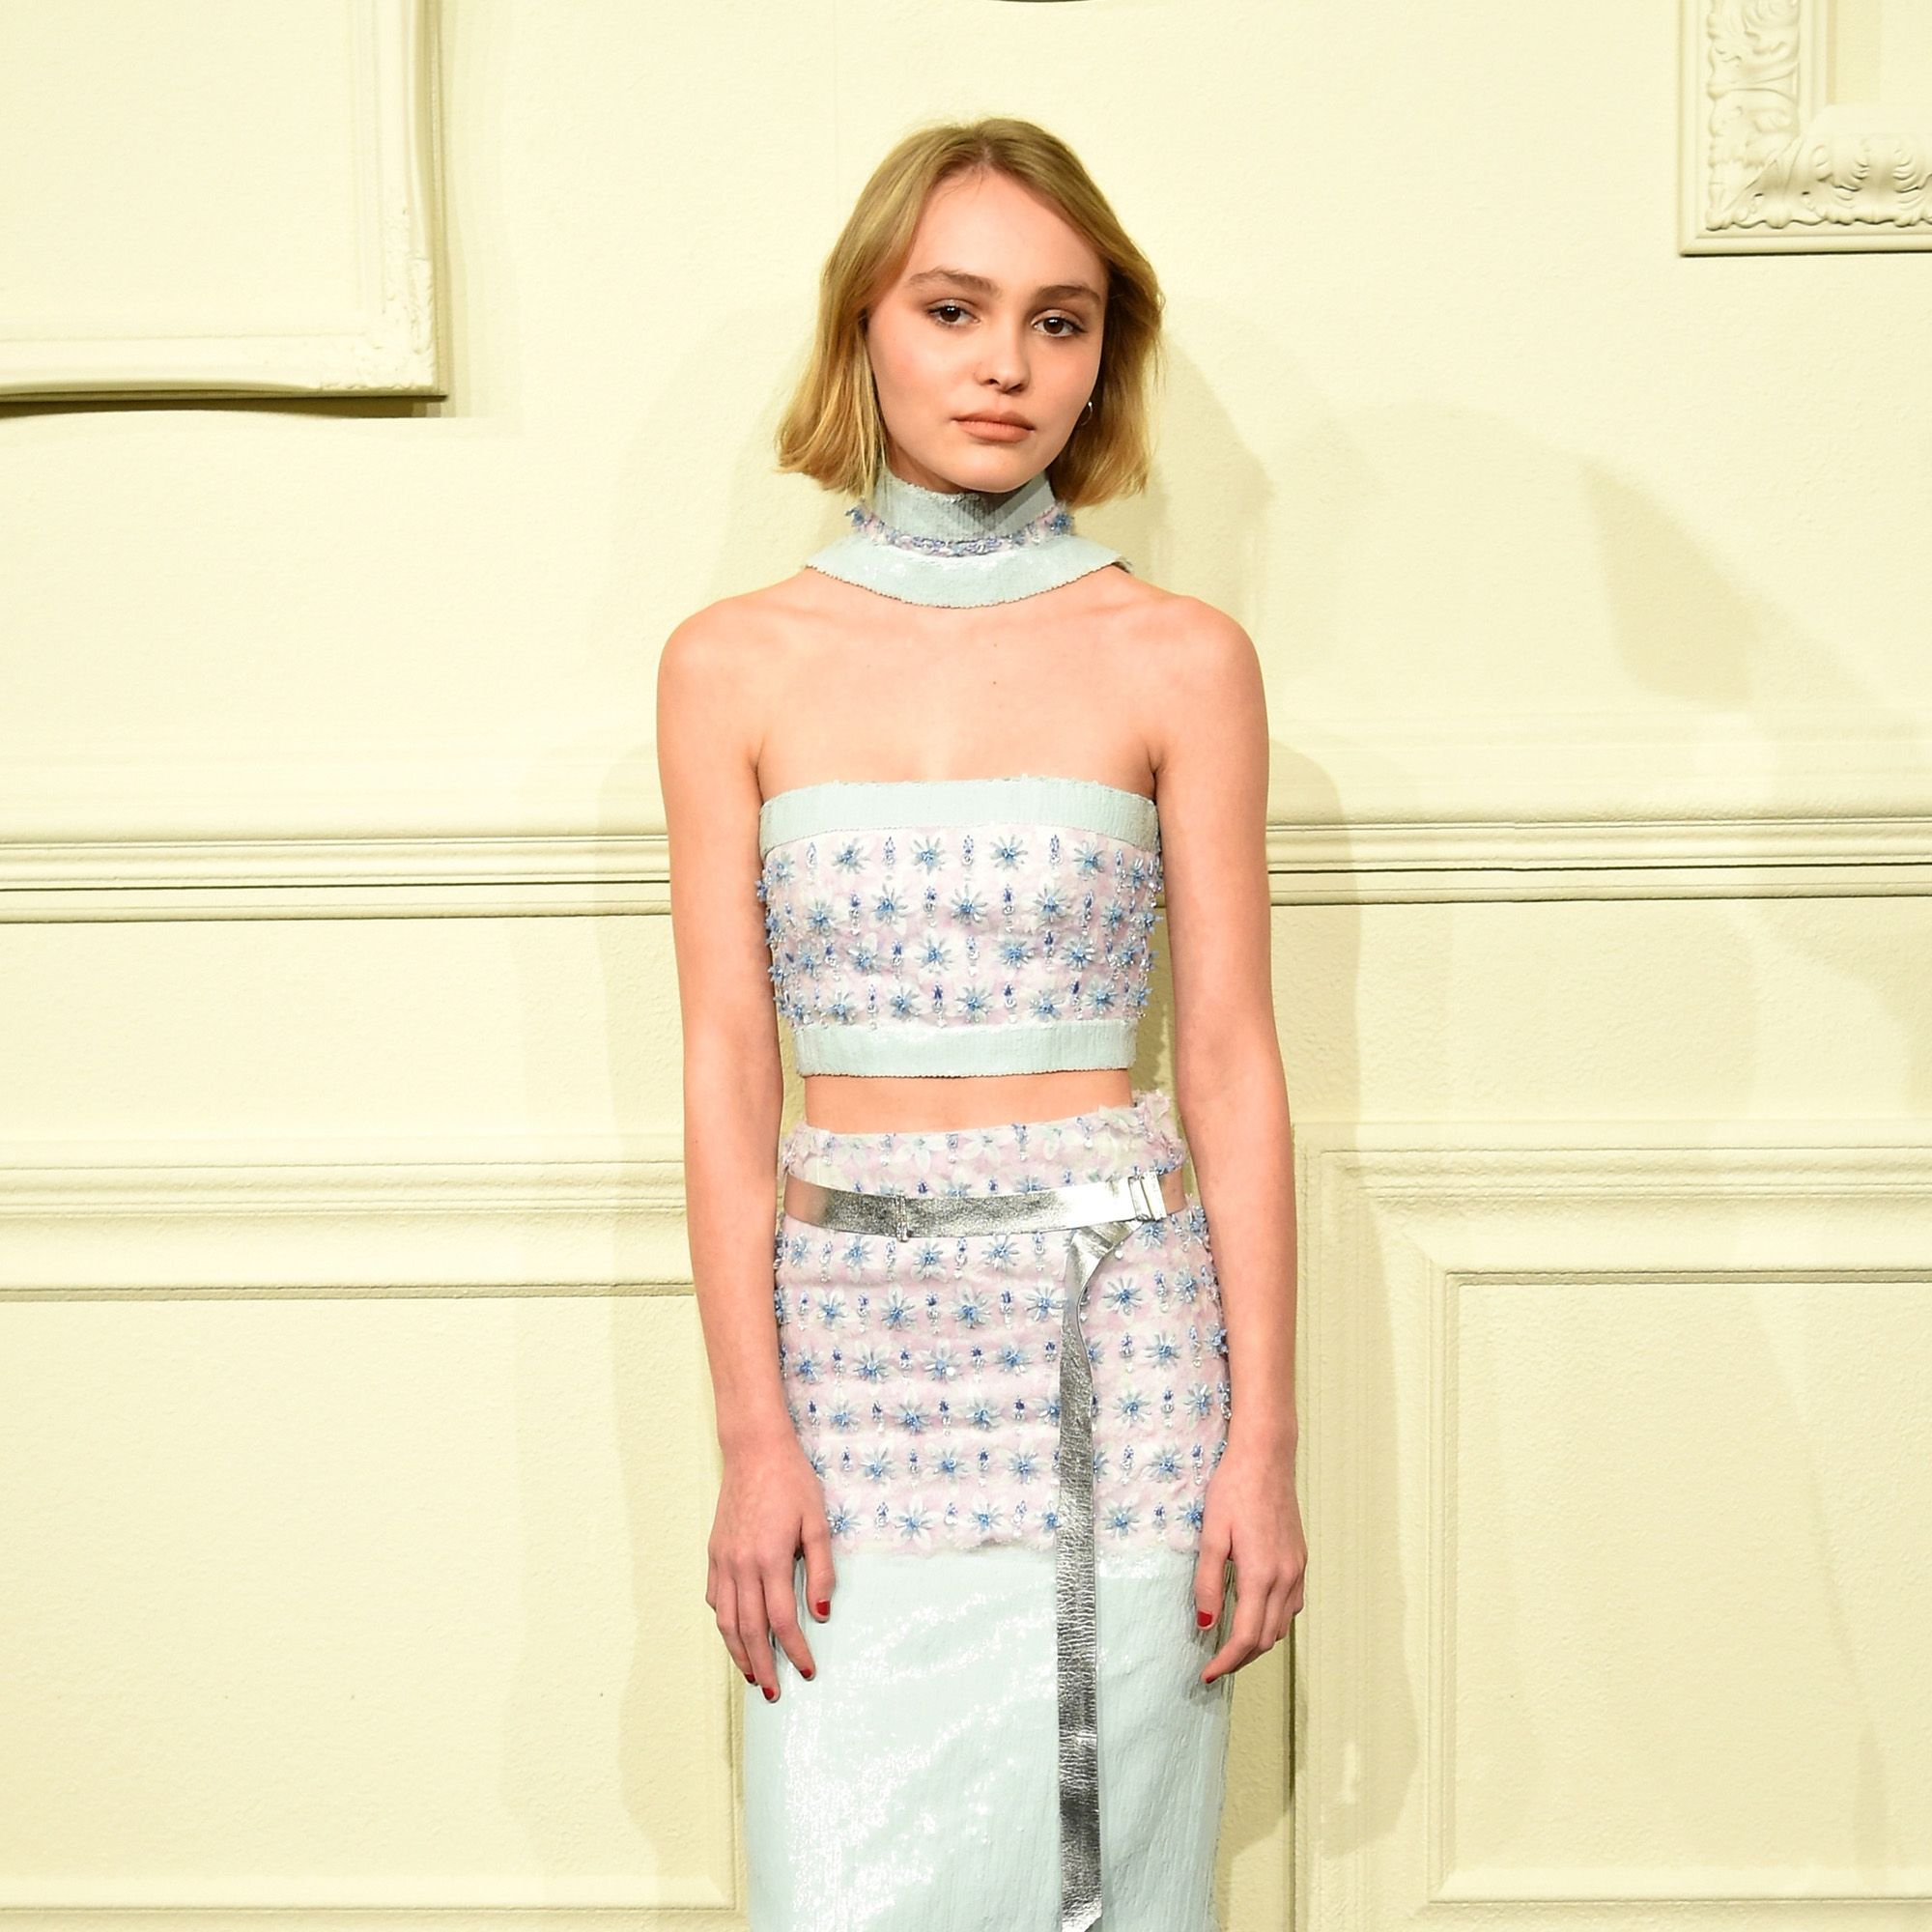 NEW YORK, NY - MARCH 31:  Lily-Rose Depp attends the CHANEL Paris-Salzburg 2014/15 Metiers d'Art Collection in New York City at the Park Avenue Armory on March 31, 2015 in New York City.  (Photo by Andrew H. Walker/WireImage)